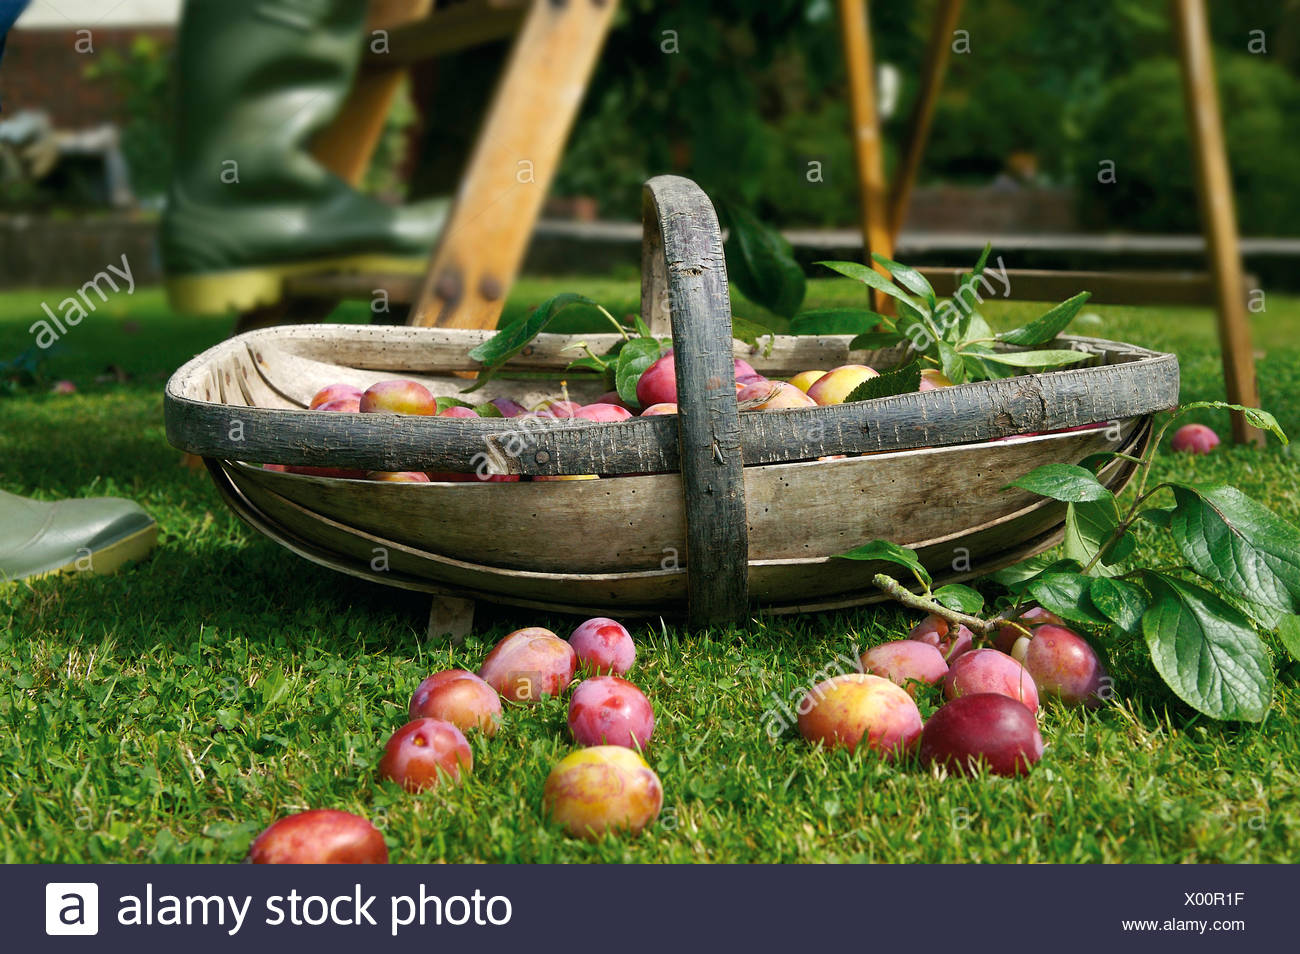 Plums in wooden trug on lawn Stock Photo